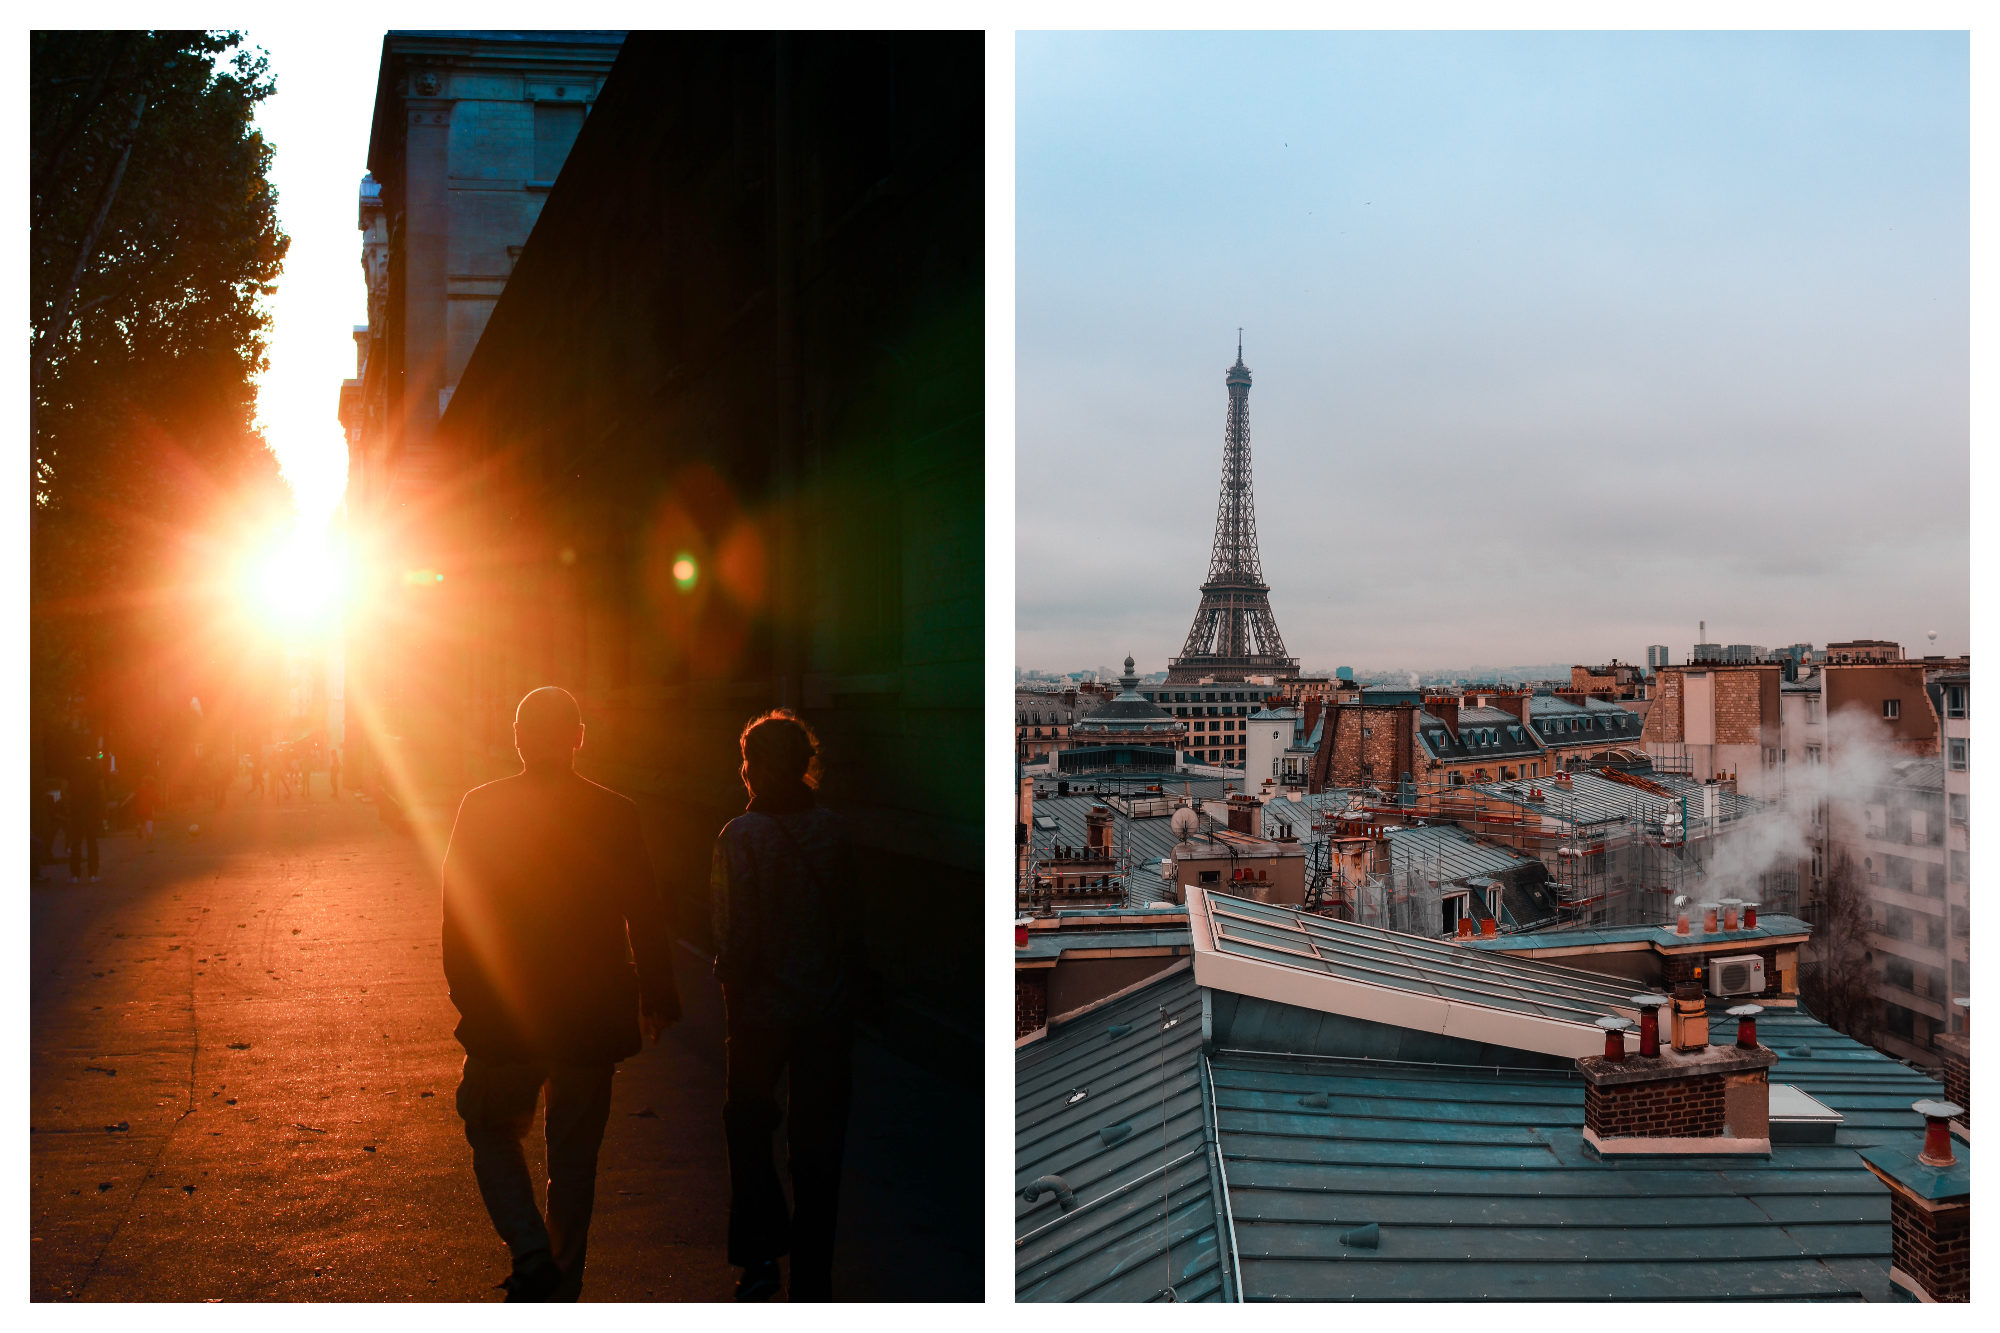 A couple strolling the streets of Paris at sunset (left). The Paris rooftops with the Eiffel Tower in the background (right).